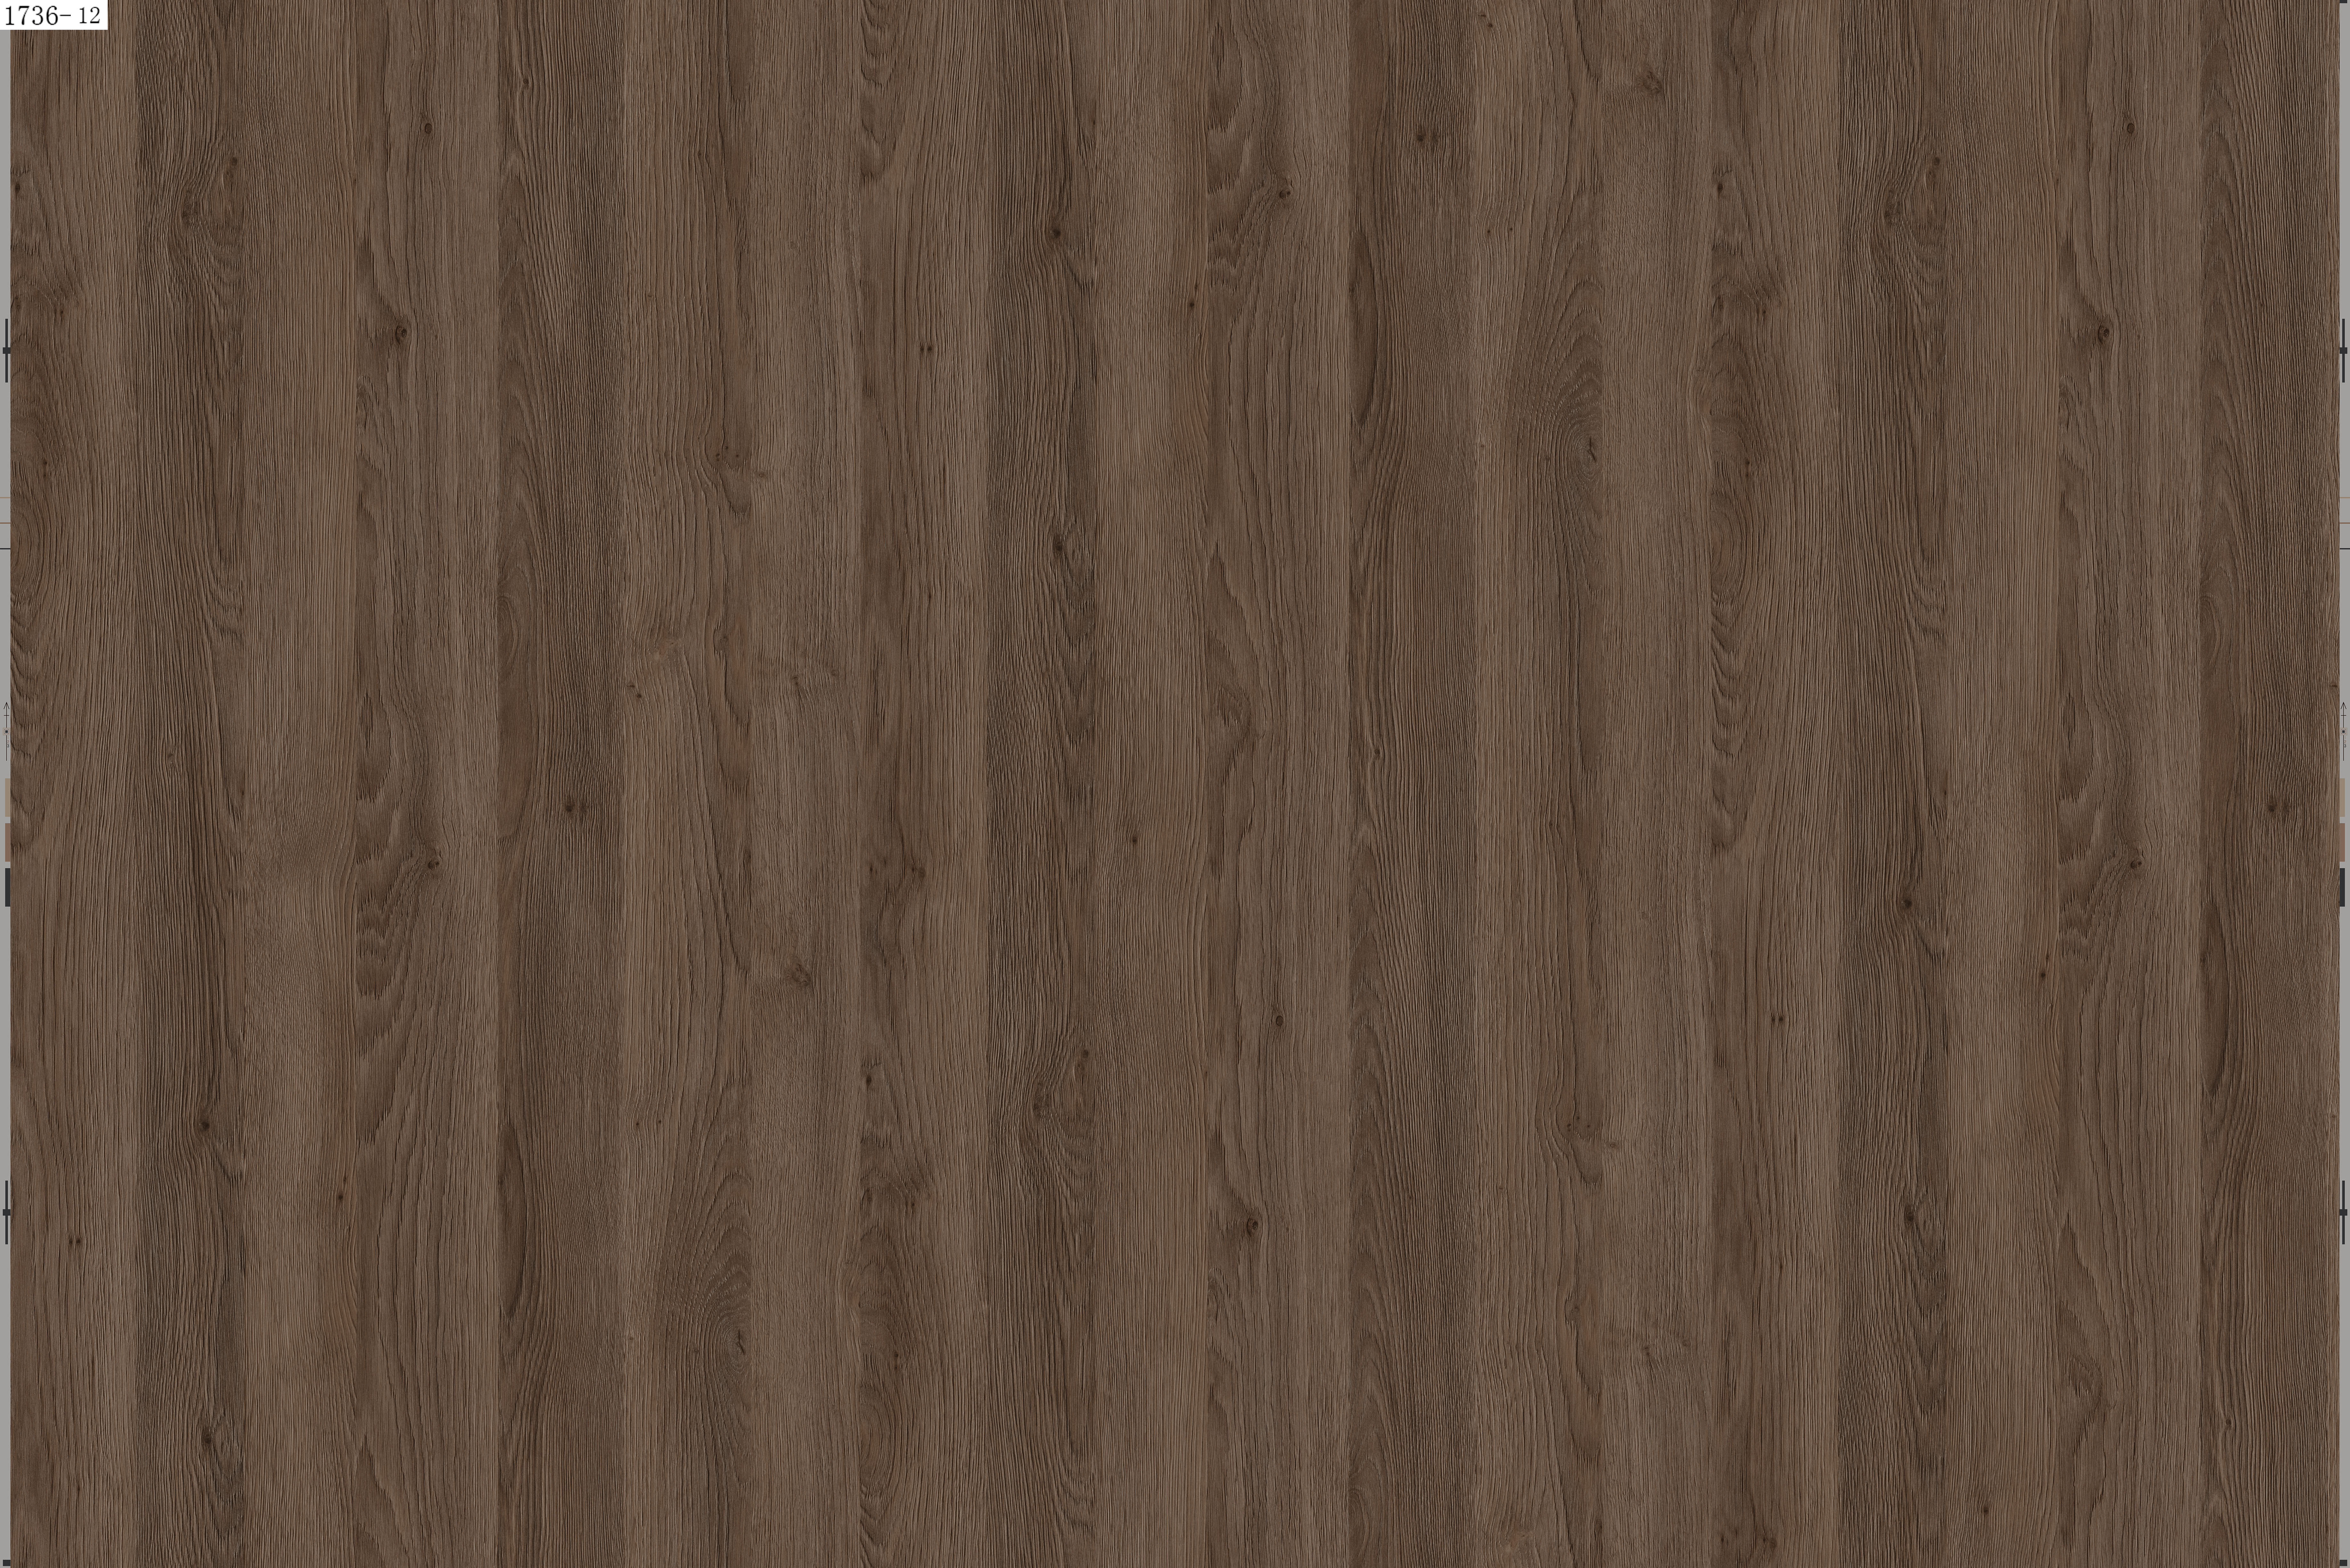 Forest Oak Mid Brown,AW4